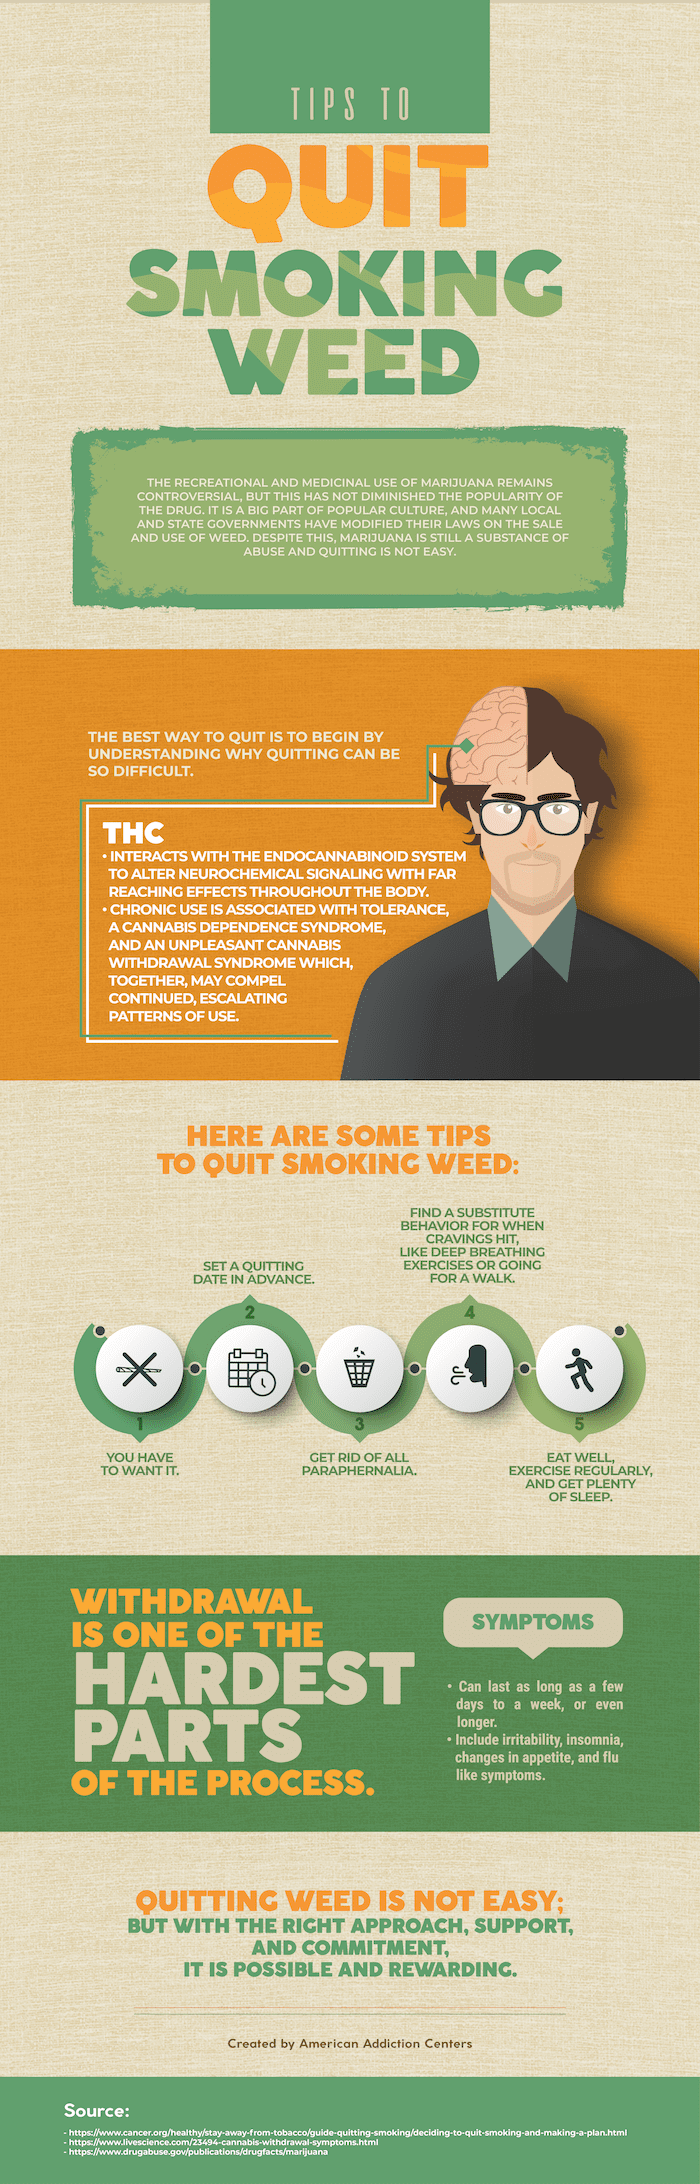 How to Stop Smoking Pot: Tips and Benefits of Quitting